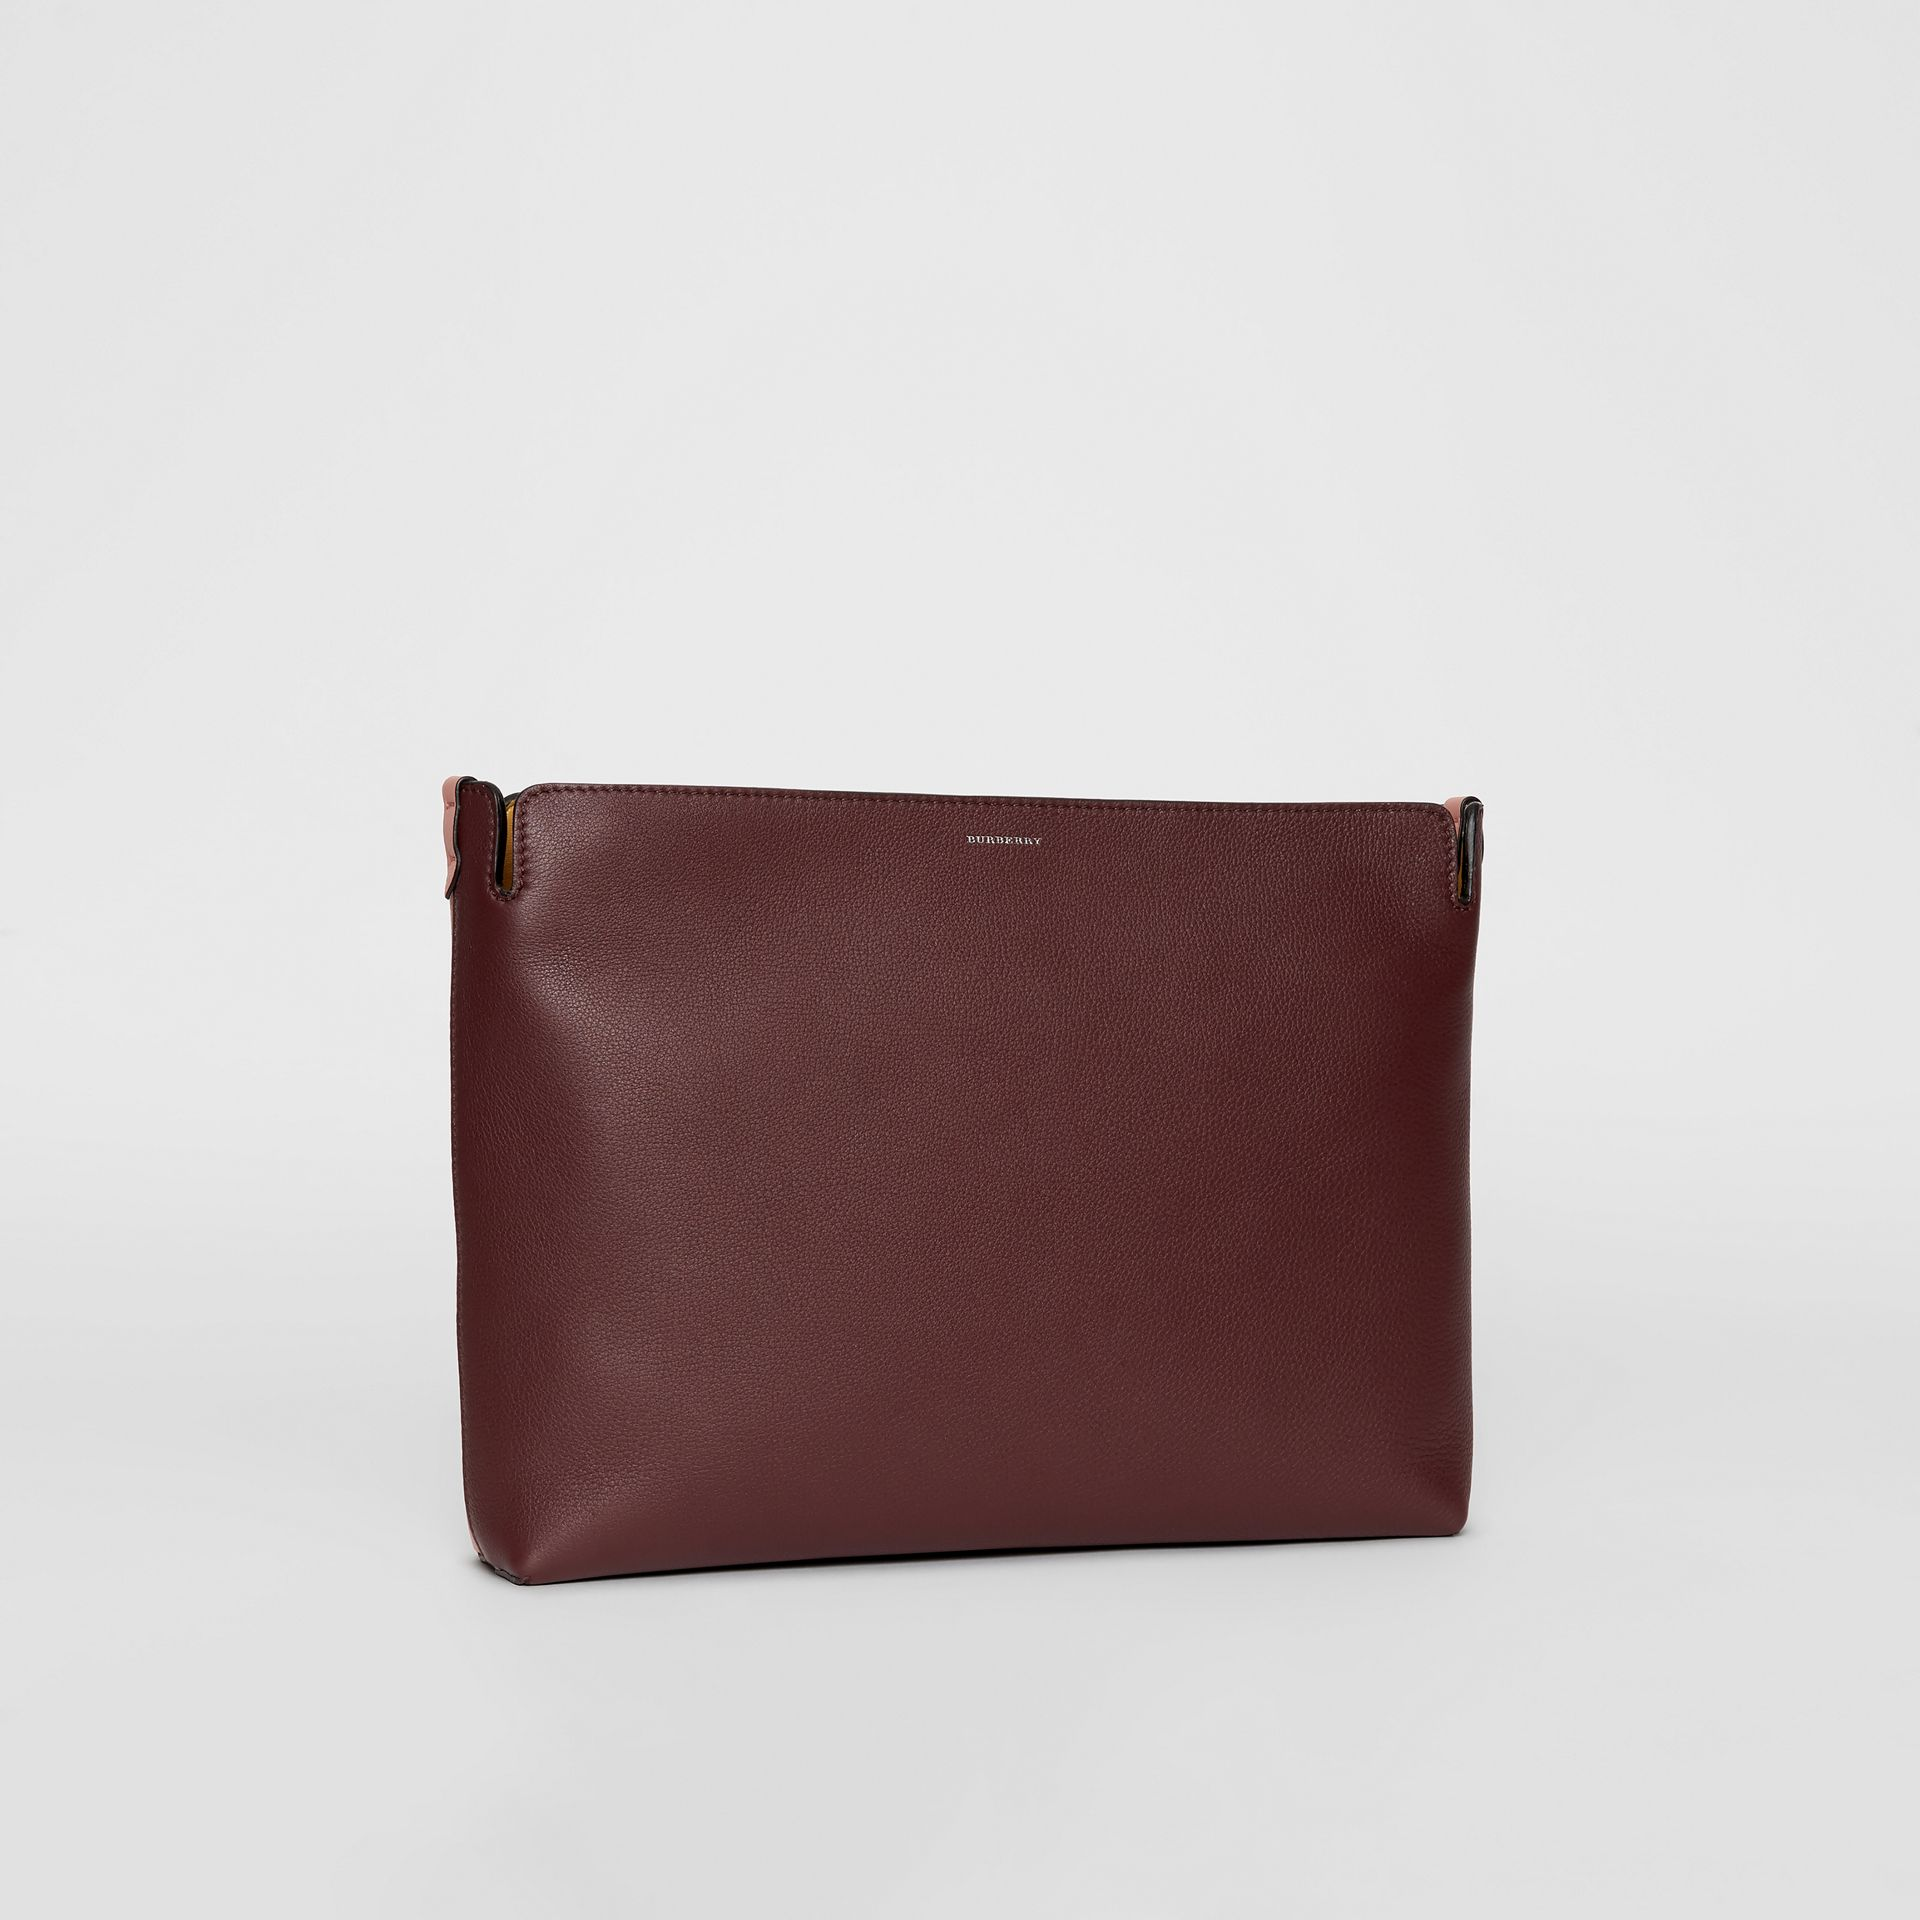 Large Tri-tone Leather Clutch in Deep Claret/dusty Rose - Women | Burberry United States - gallery image 4